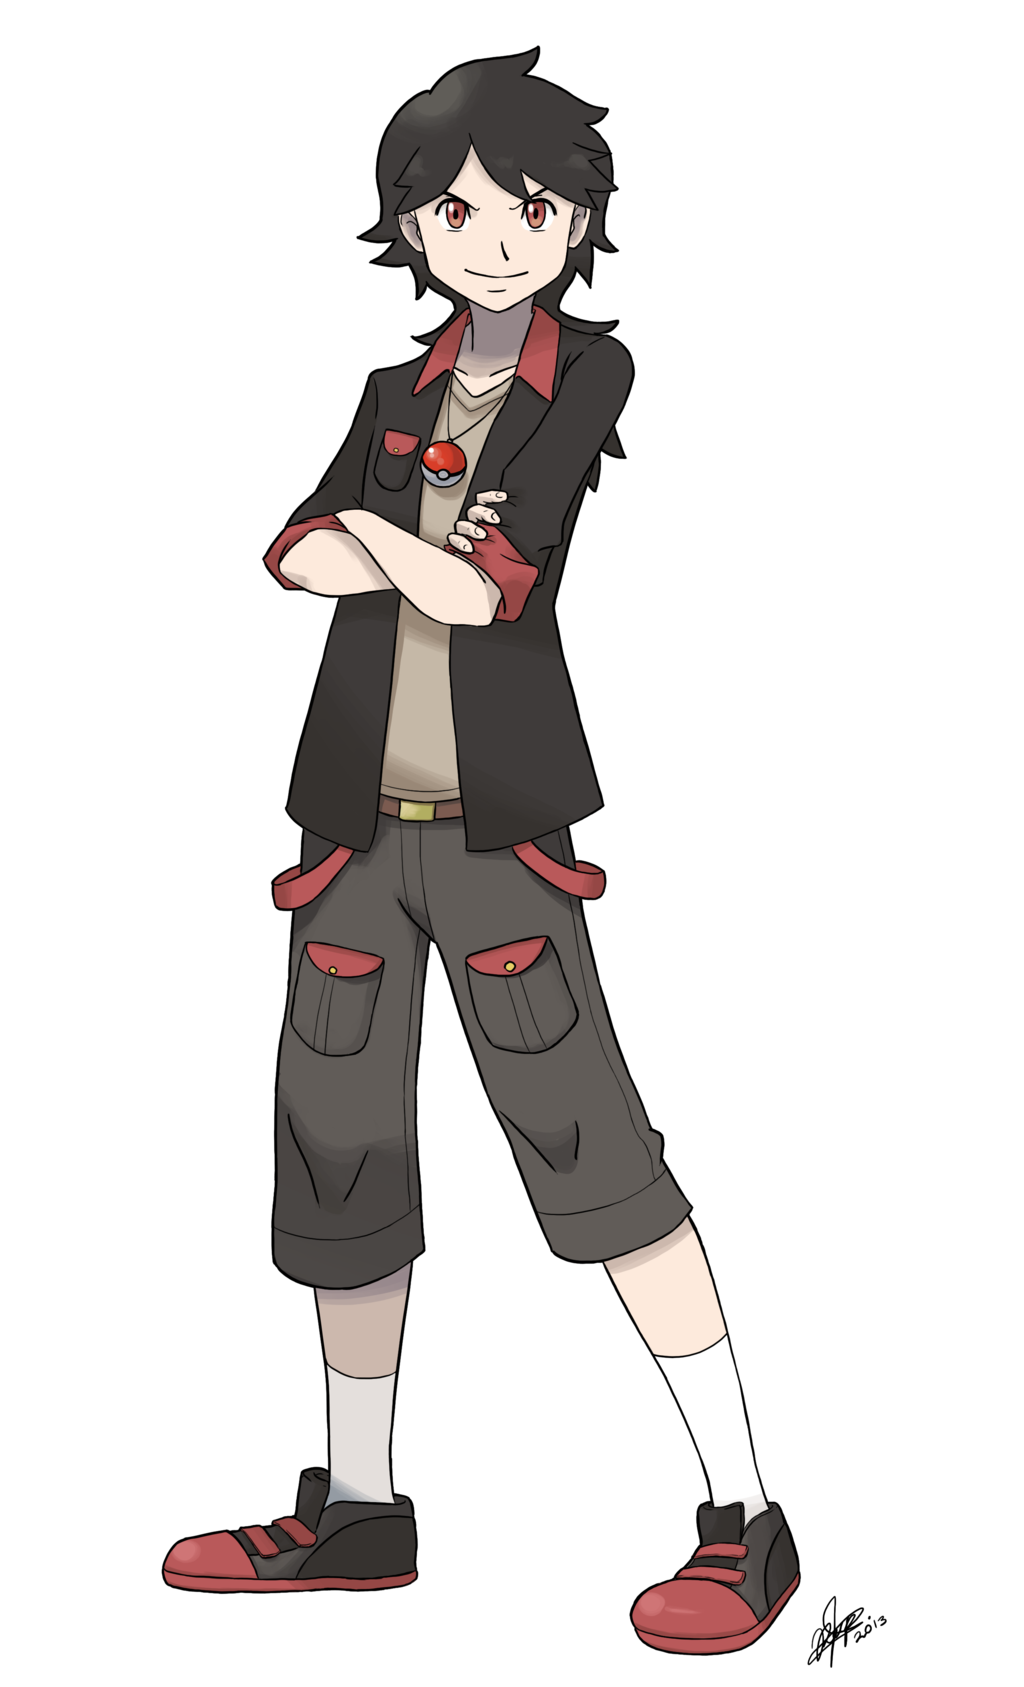 Male Pkmn Trainer Commission For Scattystorm By Kysel D5yaa2c Png 1024 1687 Pokemon Pokemon Game Characters Pokemon Human Characters